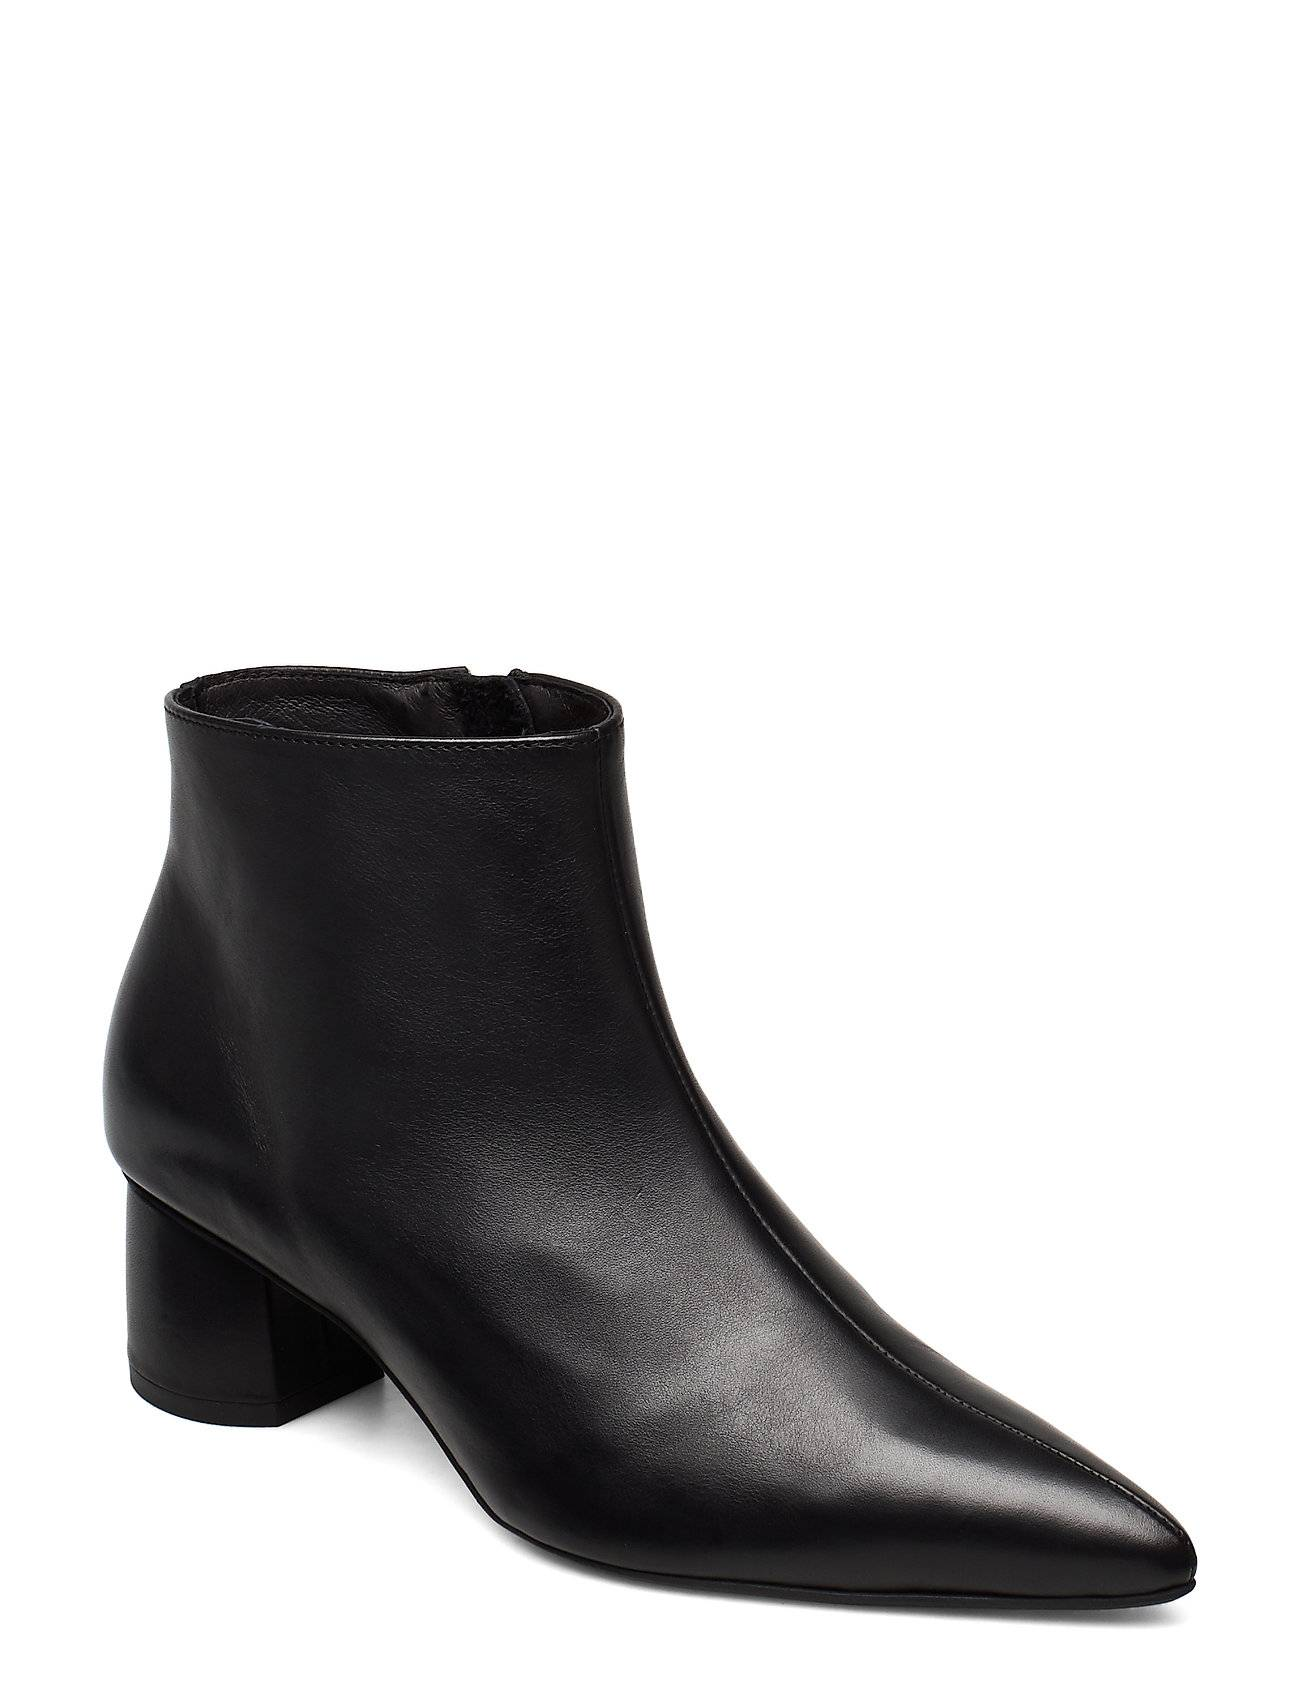 ANNY NORD To The Moon And Back Shoes Boots Ankle Boots Ankle Boots With Heel Musta